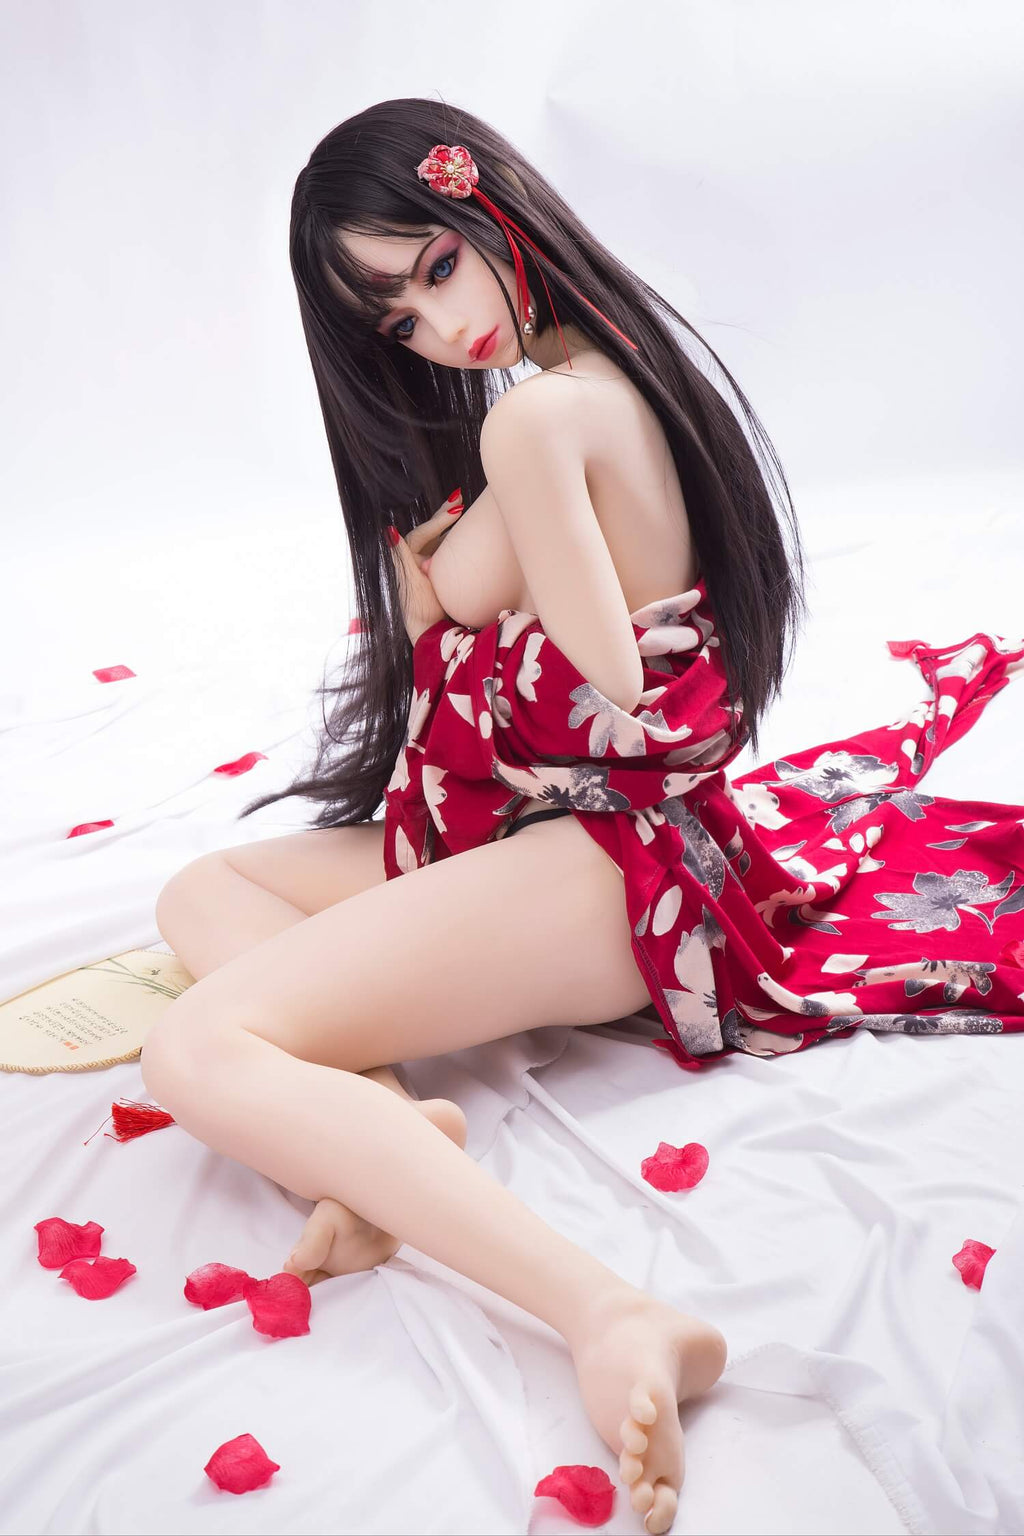 Sakura Sex Doll - Japanese girl Sex Toys